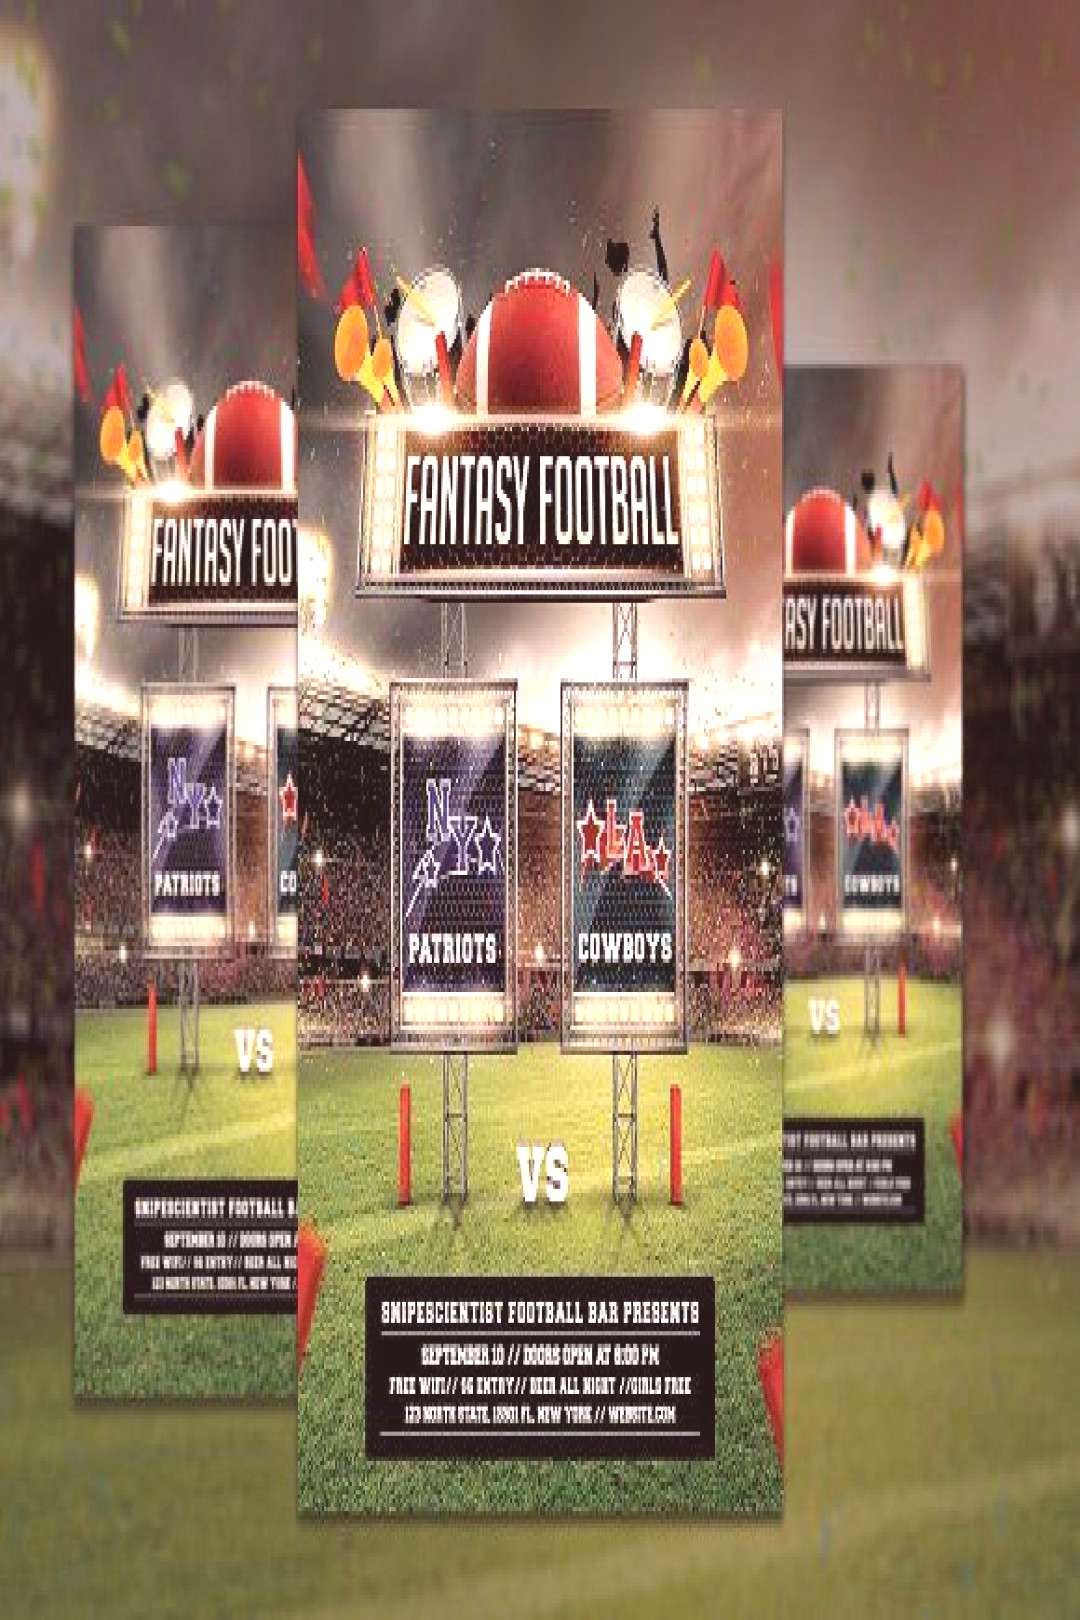 Fantasy Football Game Flyer Template by SNIPESCIENTIST on @creativemarket